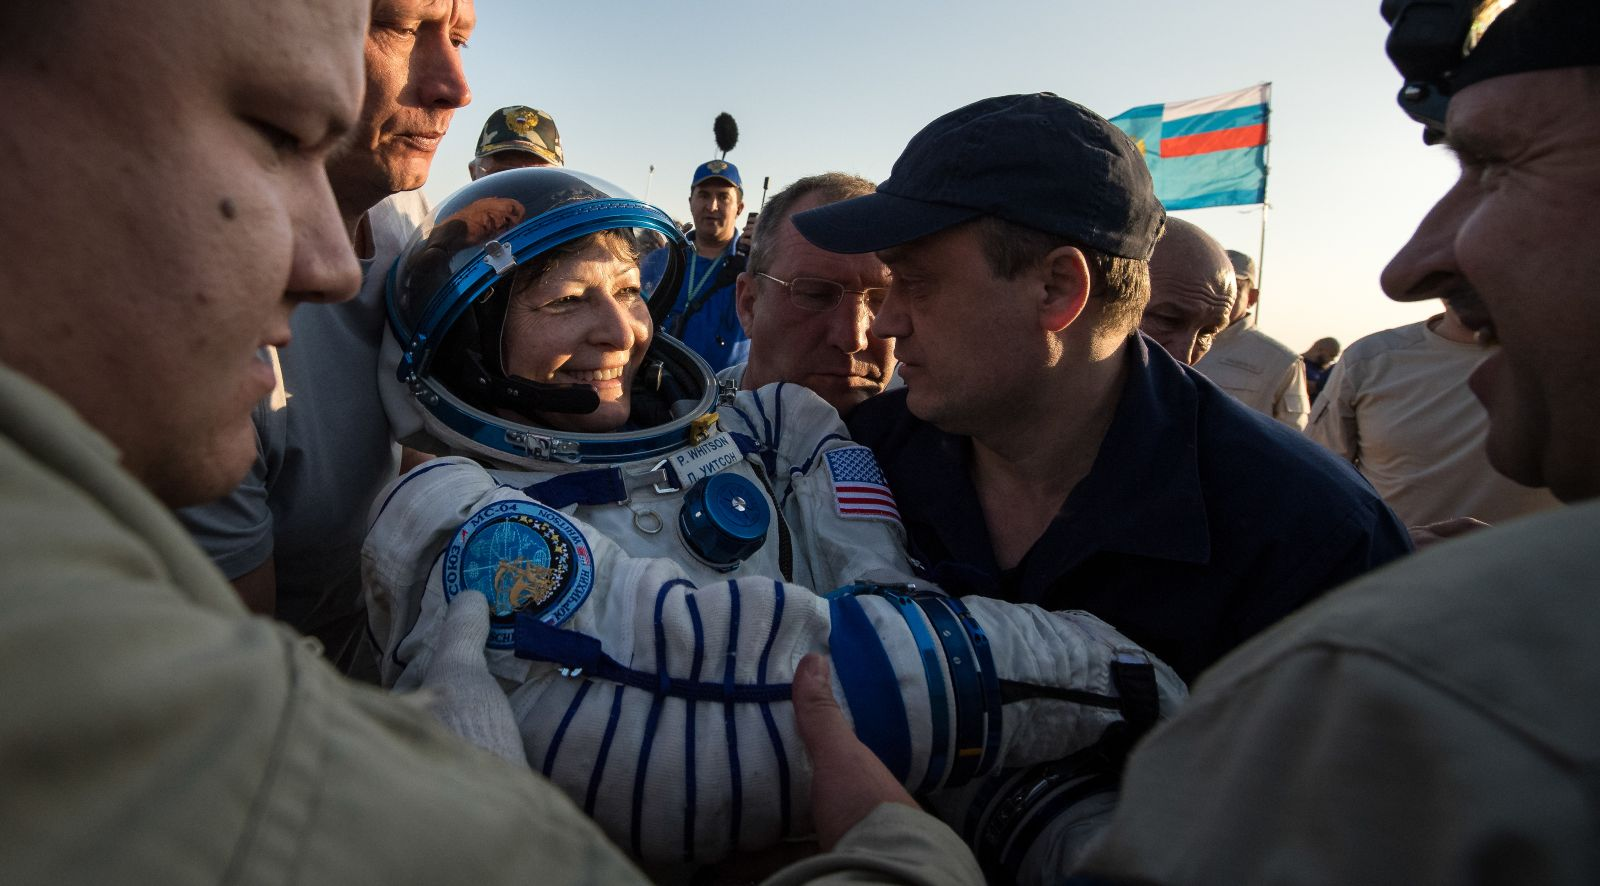 Peggy Whitson was the final crew member of Soyuz MS-04 to be helped out. All three were placed on lawn chair-like couches for an initial health check before being transported to a nearby medical tent for further evaluation. Photo Credit: Bill Ingalls / NASA